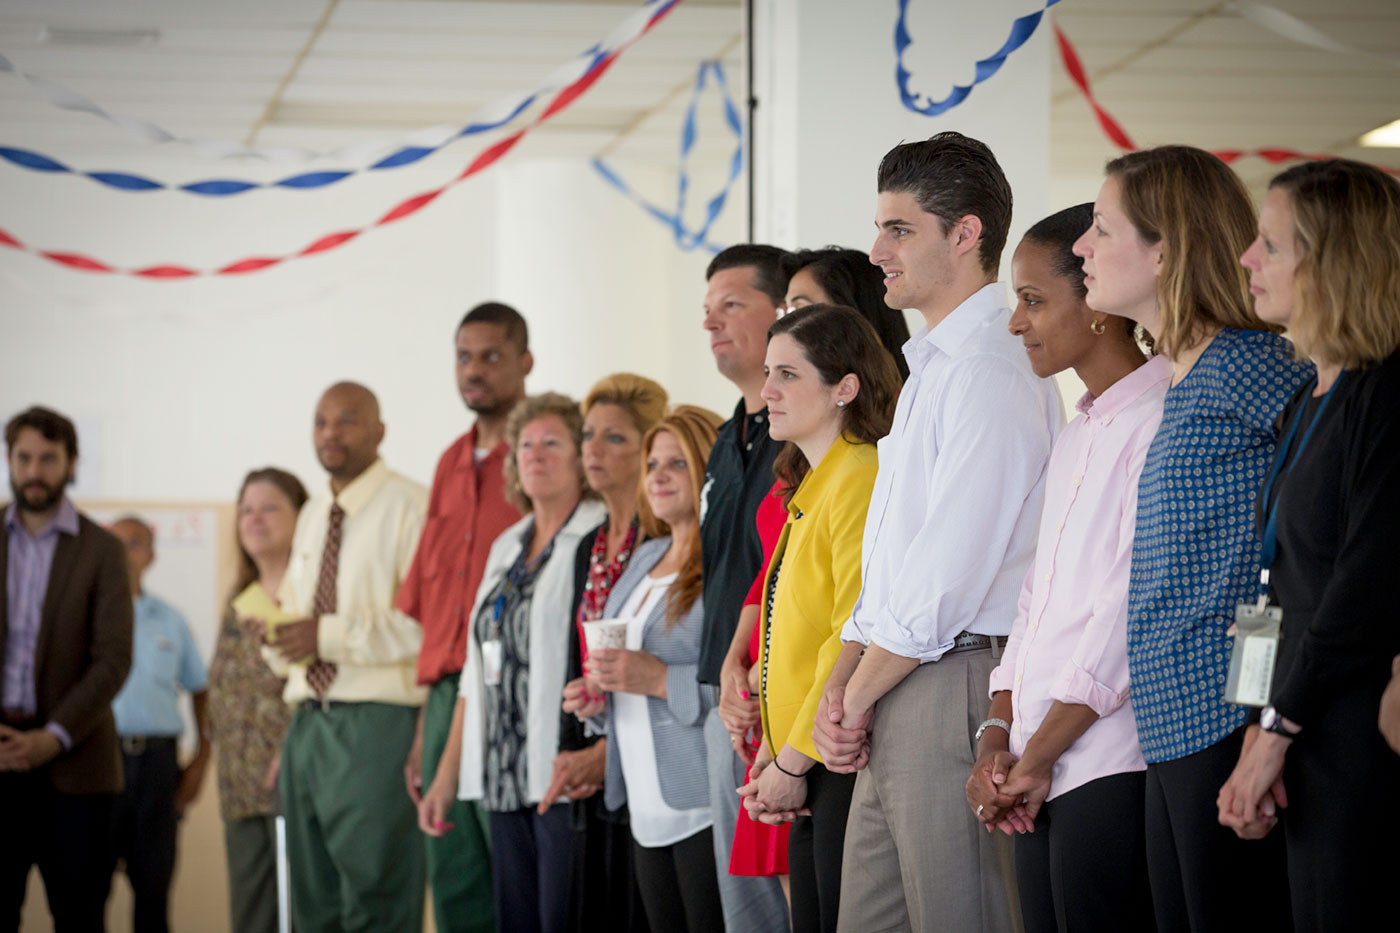 A group of professionals stand in a line with colored party decorations hanging above